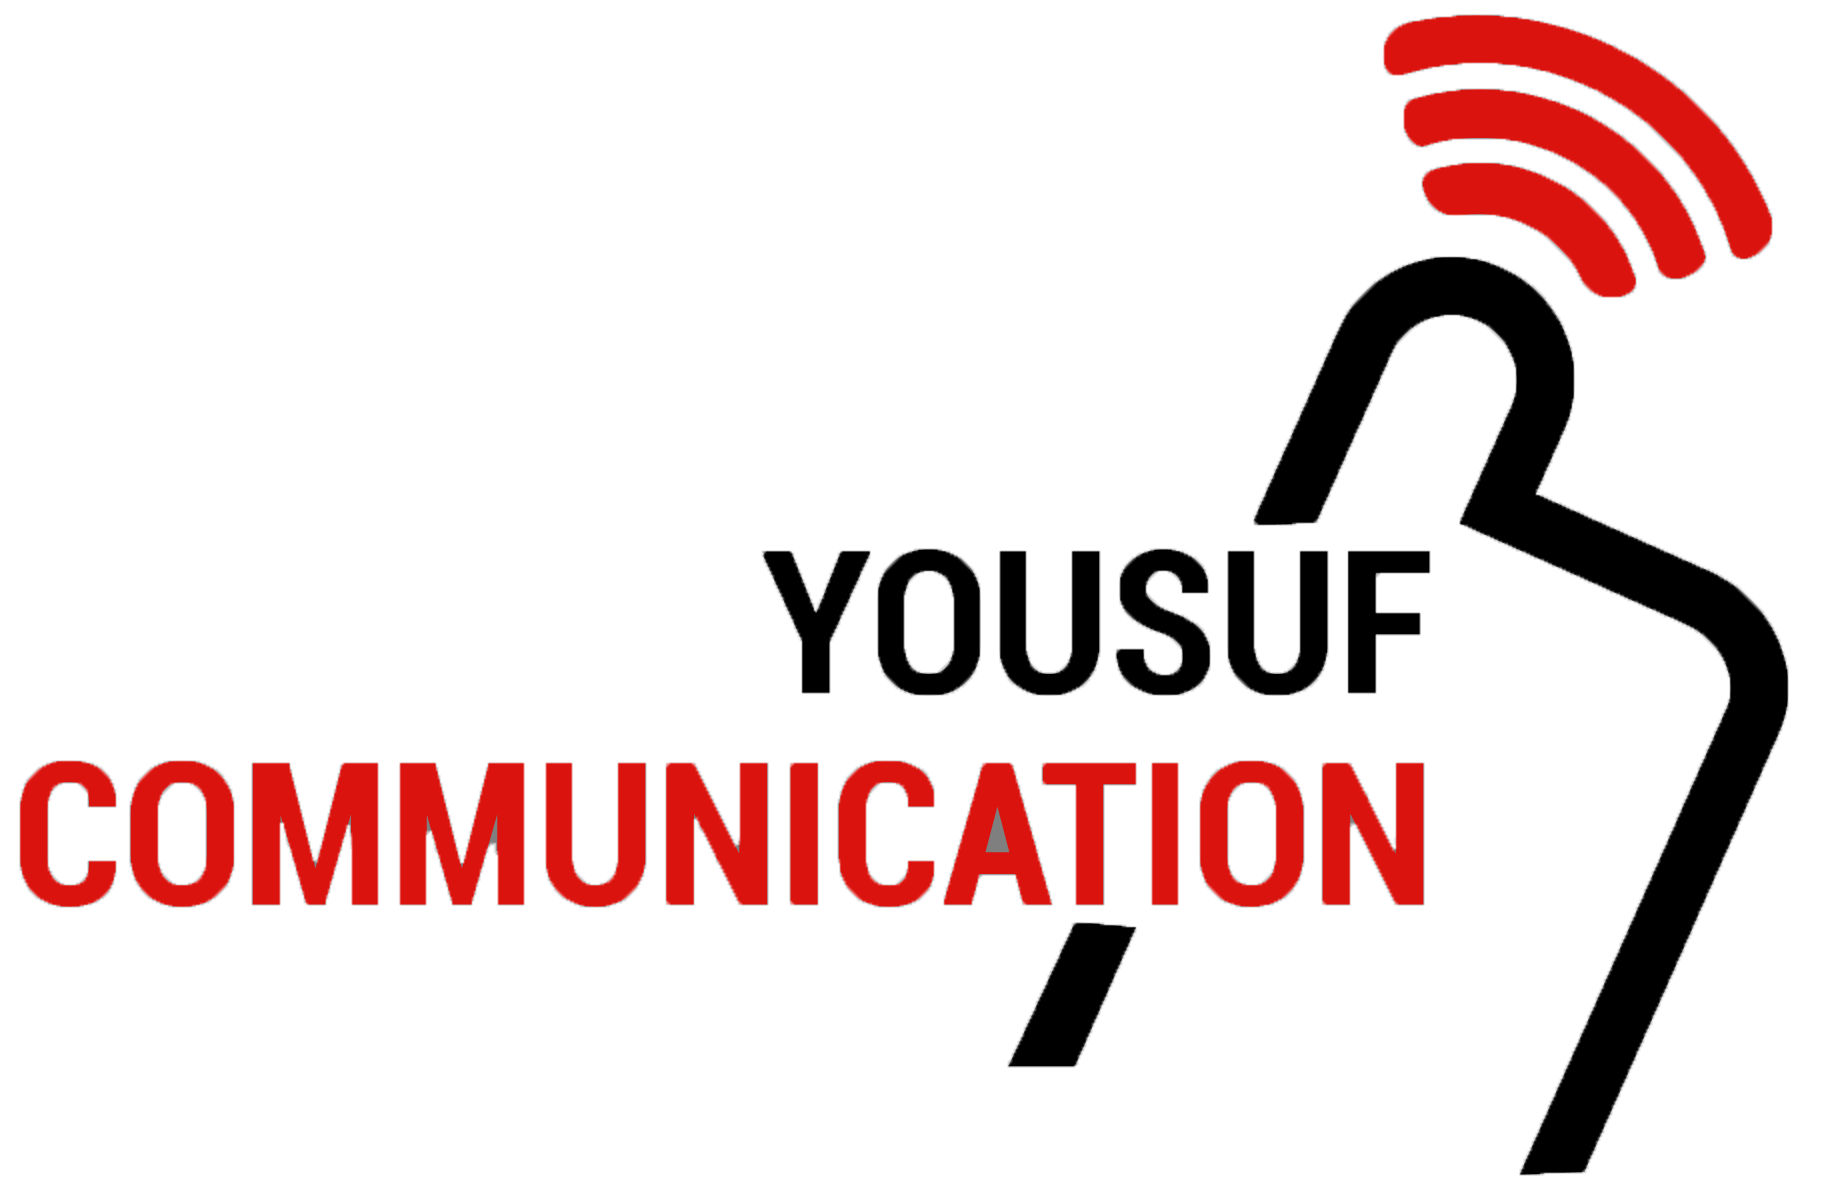 Yousuf Communication